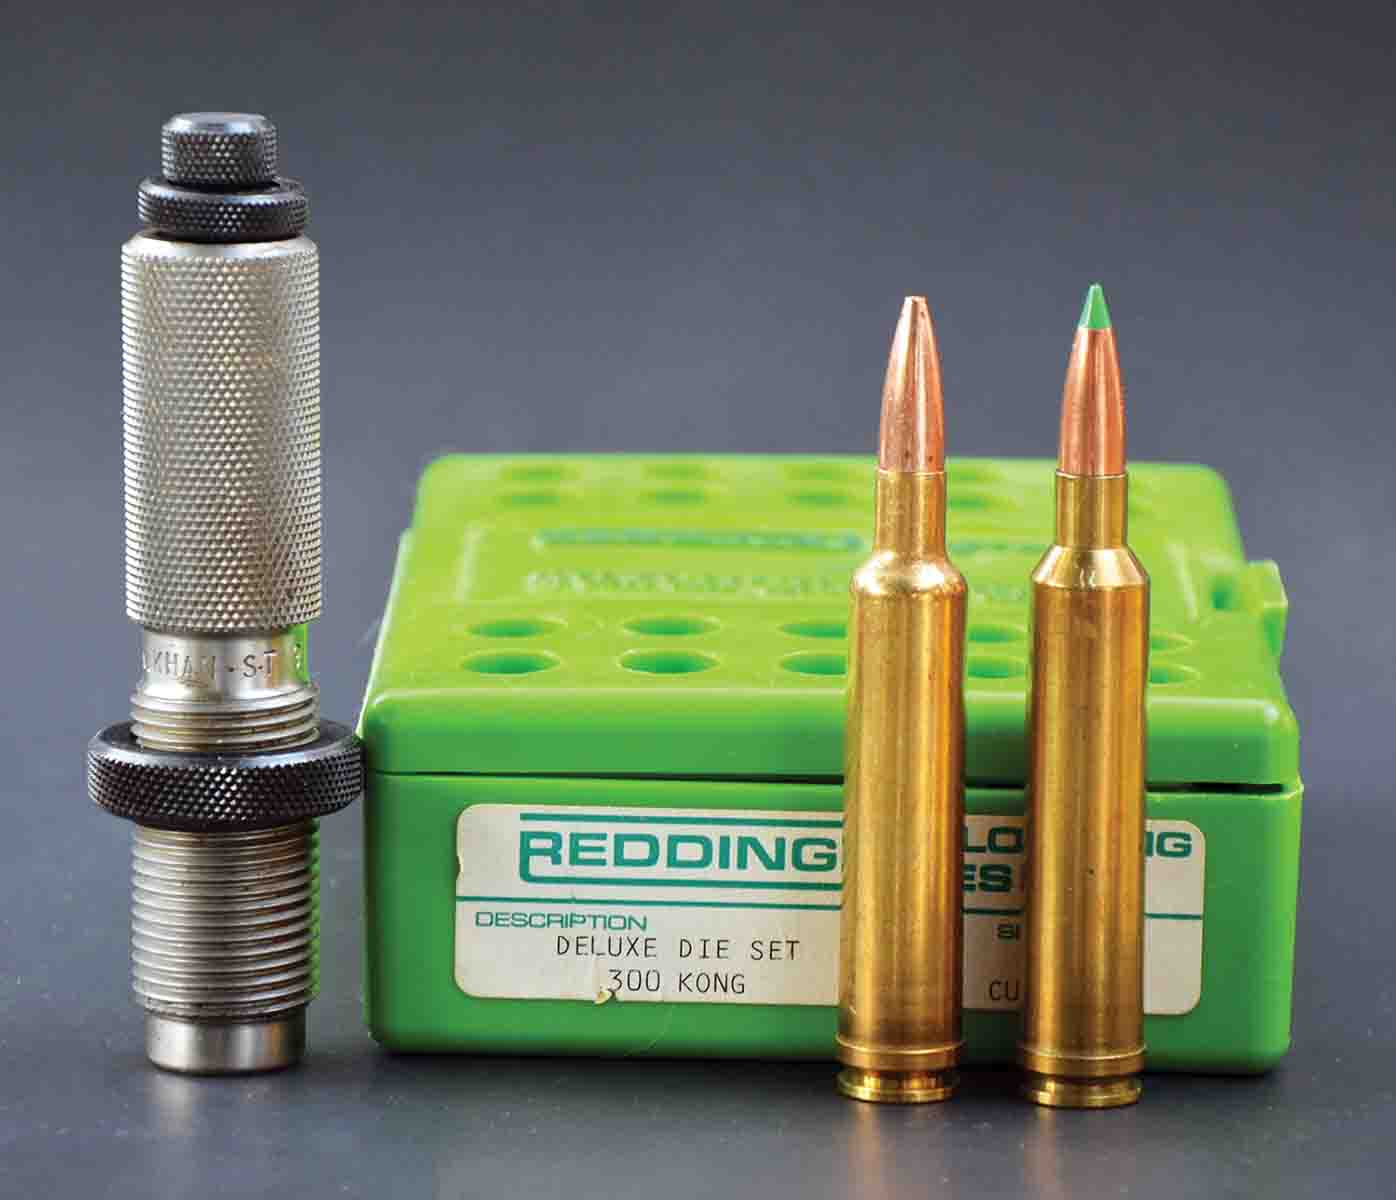 The .300 Kong (right) can be formed by running .30-378 Weatherby Magnum brass (left) through a Redding full-length resizing die and then fire-forming. The .378 Weatherby Magnum case can also be used.